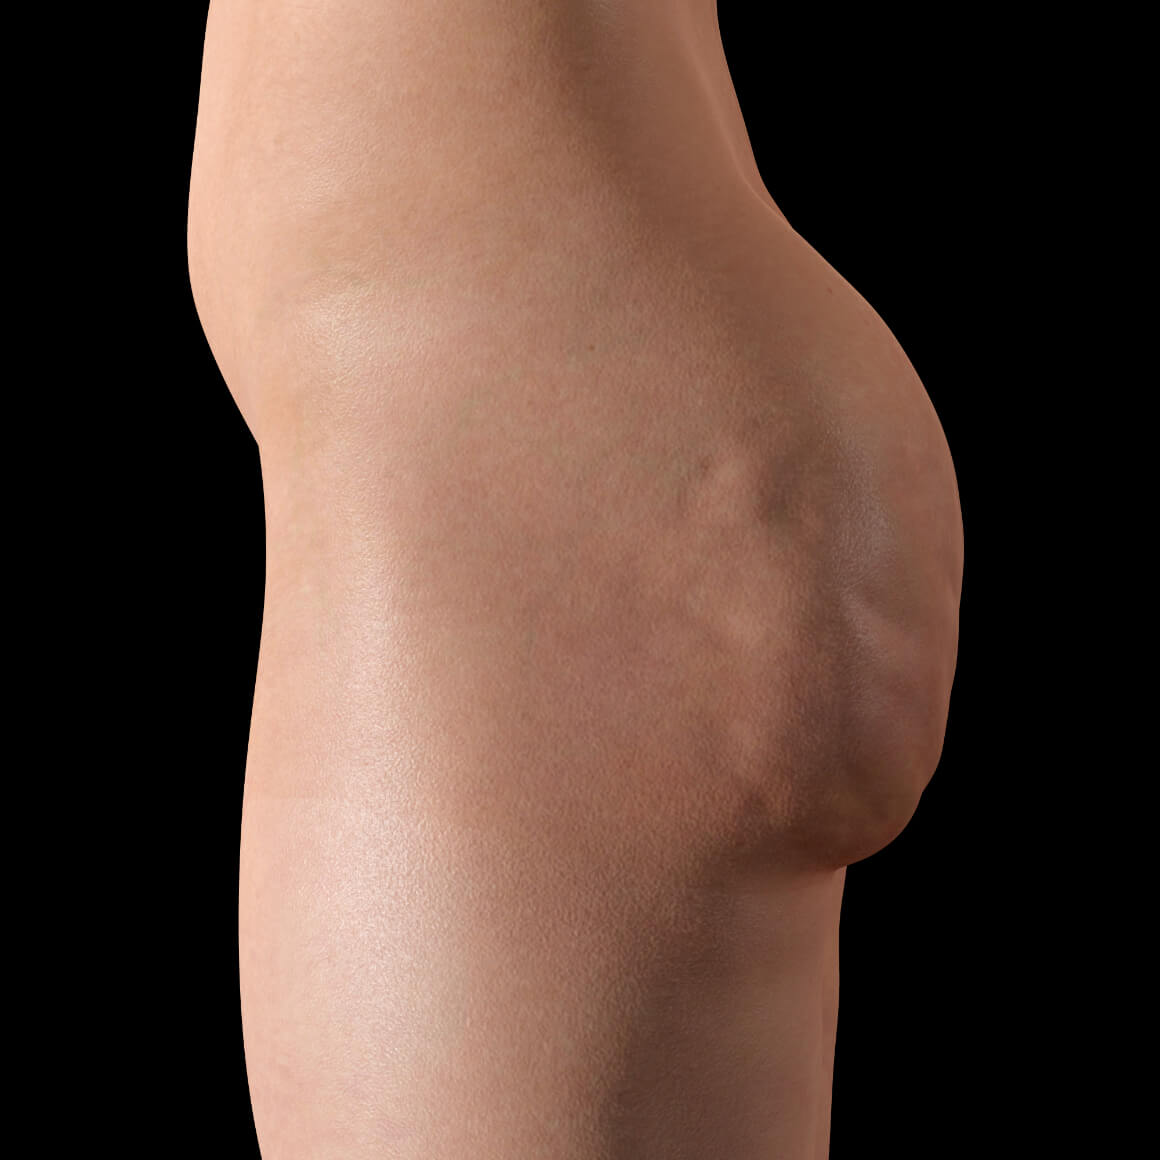 Female patient from Clinique Chloé positioned sideways with cellulite on her butttocks